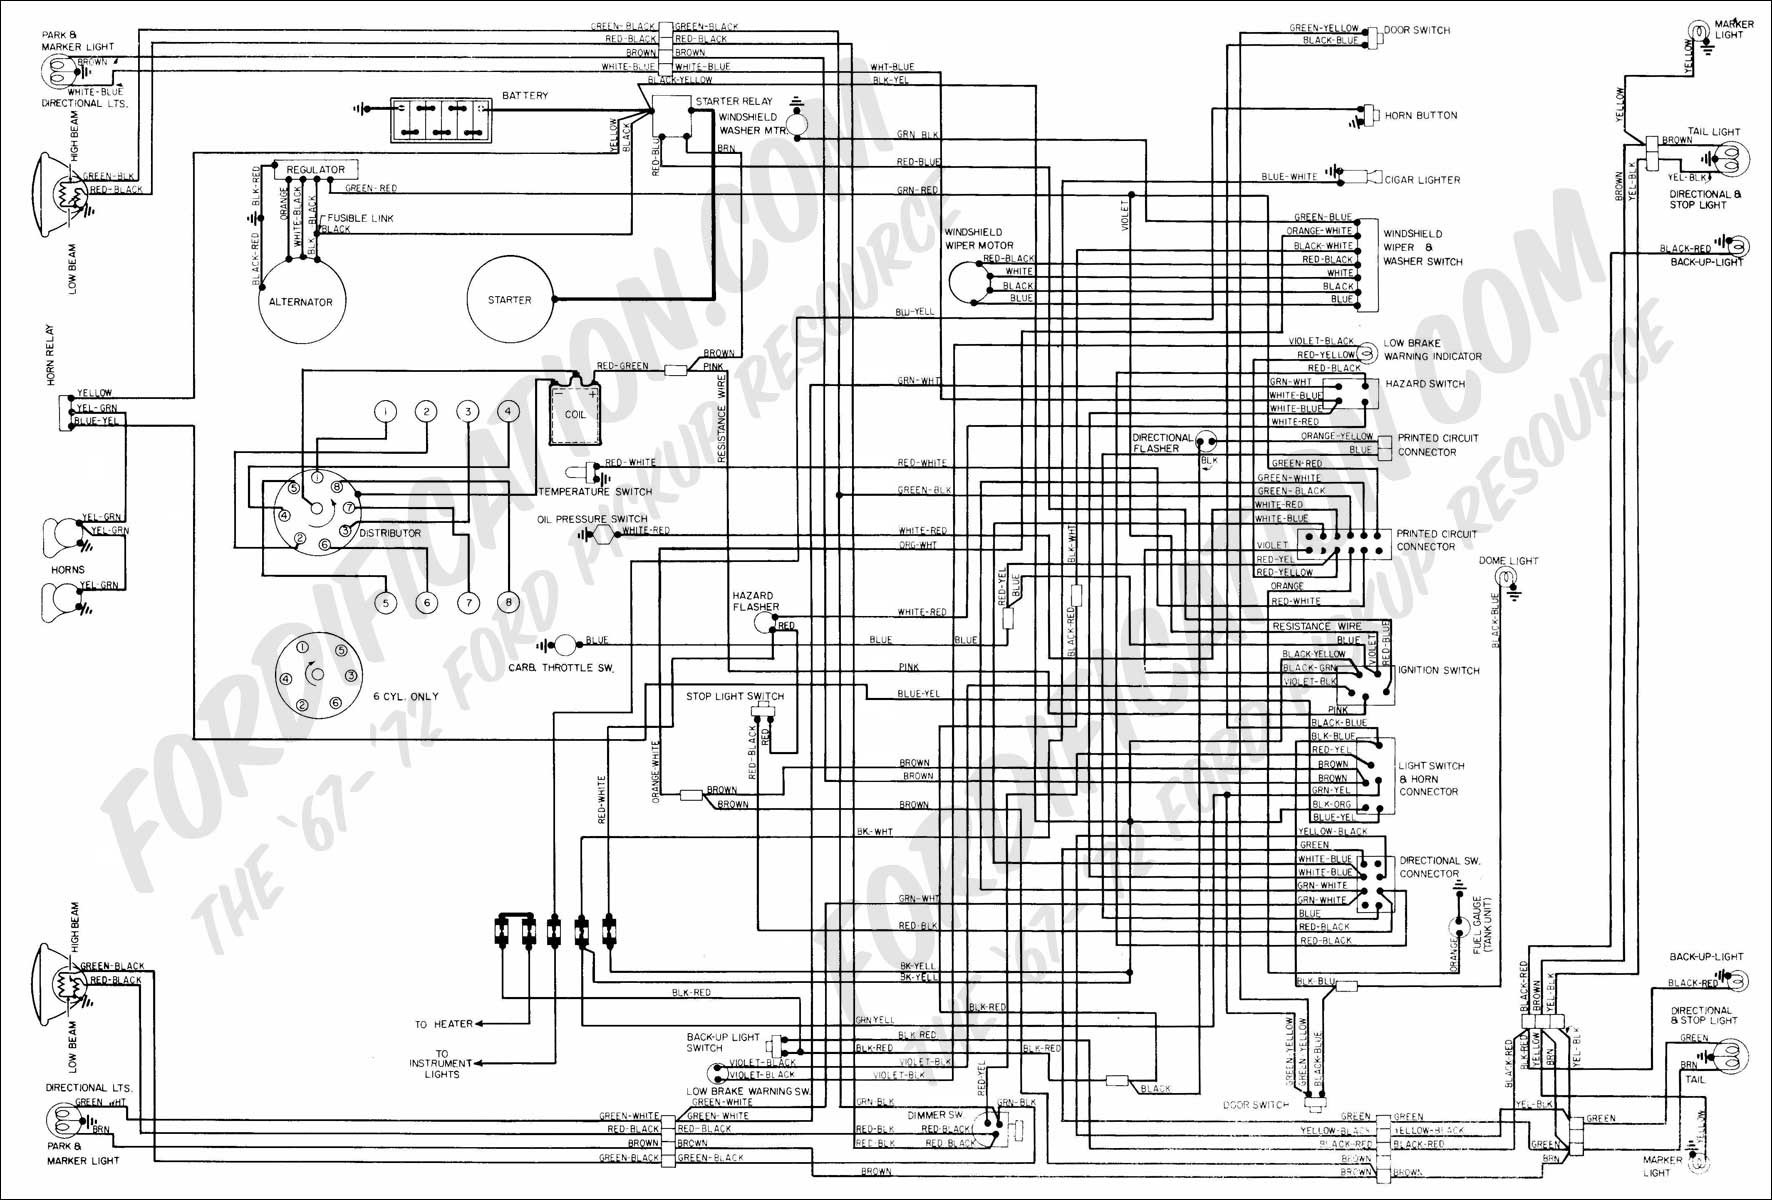 1998 Ford F150 4 2 V6 Fuse Box Diagram Ford Wiring Diagrams